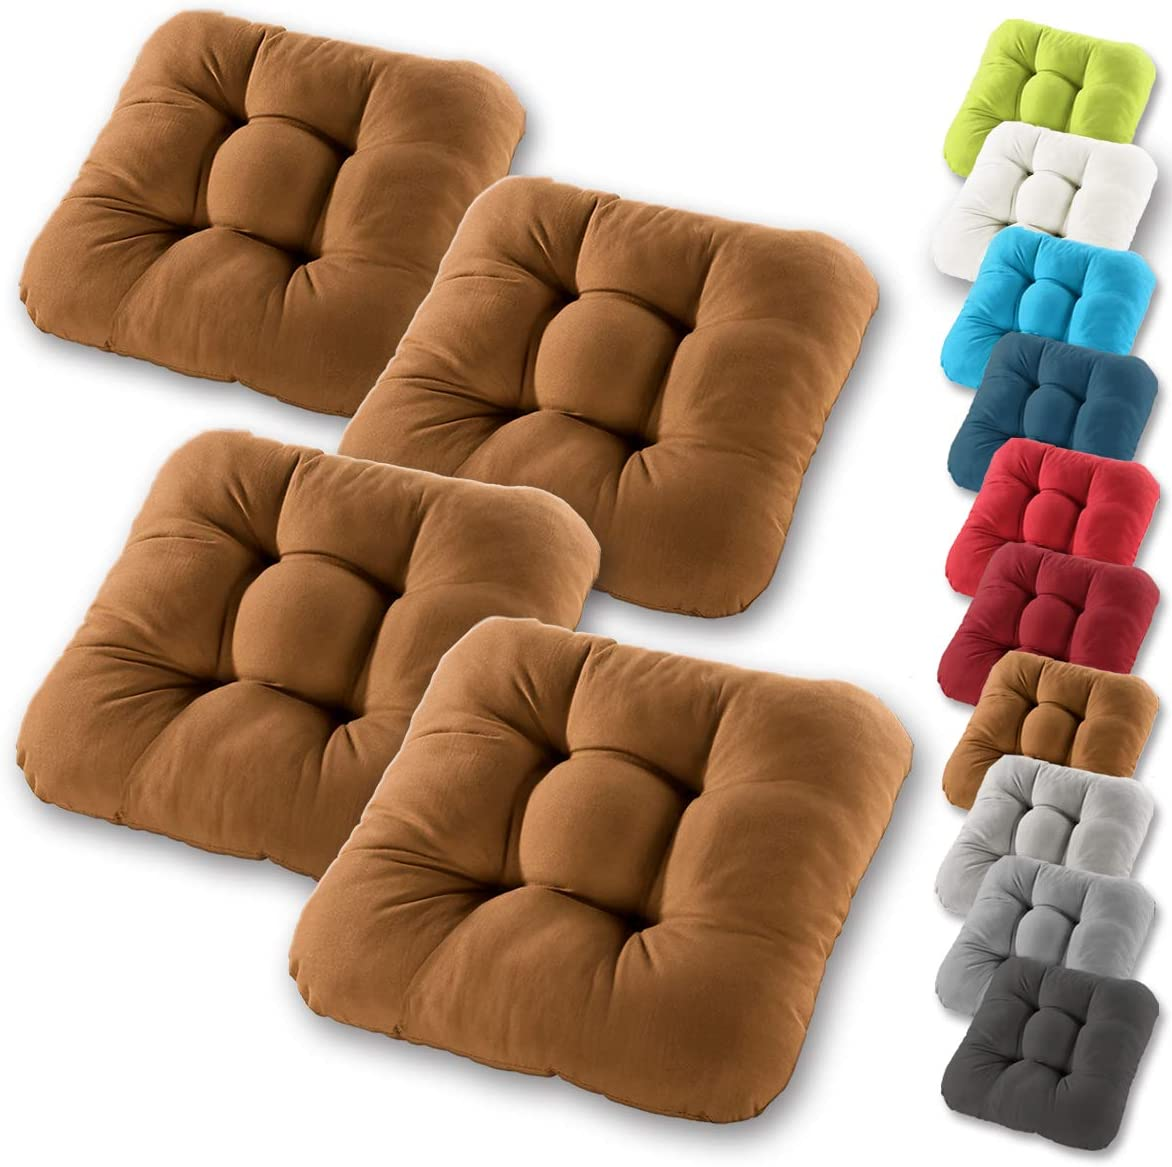 many colours 100/% cotton cover thick upholstery quilted cushion//floor cushion Gr/äfenstayn/® set of 4 seat cushions chair cushion 40x40x8cm for indoor and outdoor Dark Blue model 2019